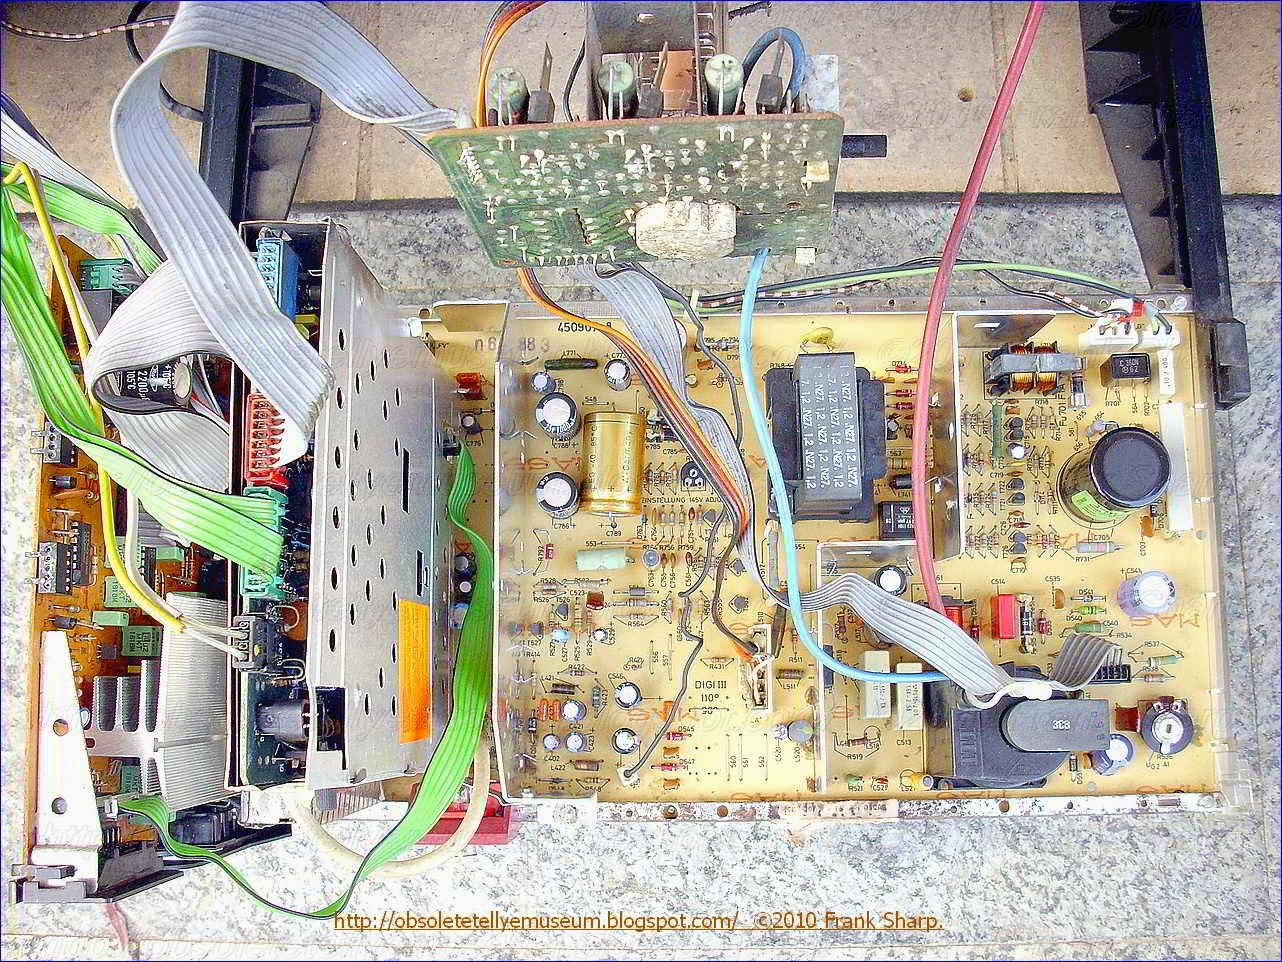 Obsolete Technology Tellye Itt Digivision 3876 Hifi Oscar Chassis Kv High Voltage Dc Power Supply With Neat Trick For Switching Polarity A Known Advantage Thereof Is That The Transistor Must Be Able To Stand Or Provide Great Current But It Need Not Dissipate